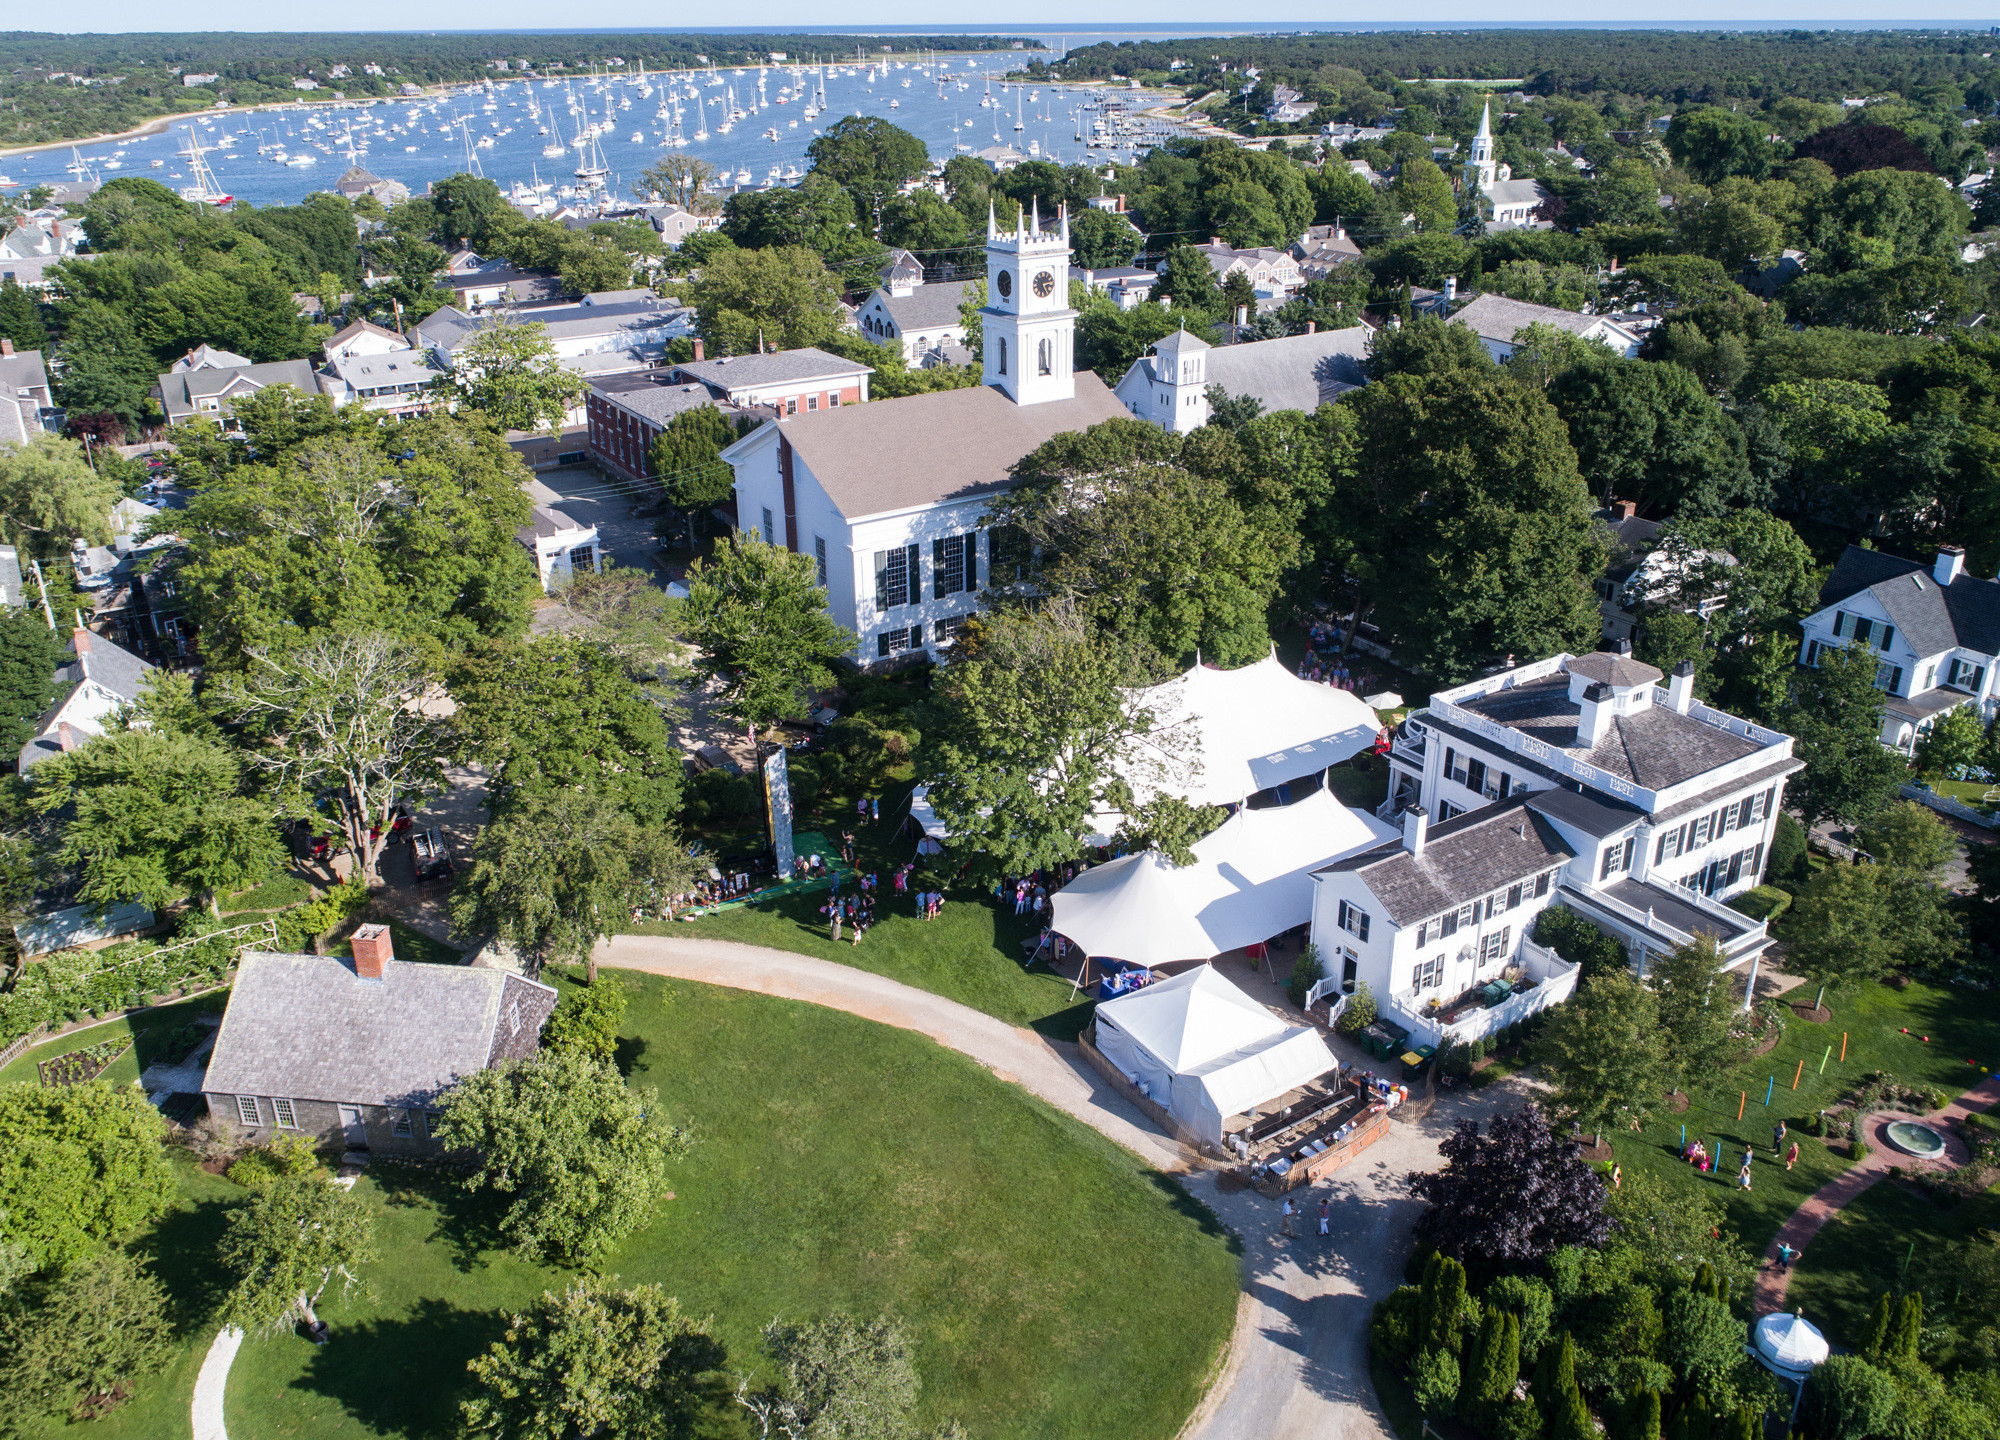 A drone photo of the Old Whaling Church and Dr. Daniel Fisher House & Gardens in Edgartown martha's vineyard wedding venues photo by David Welch Photography